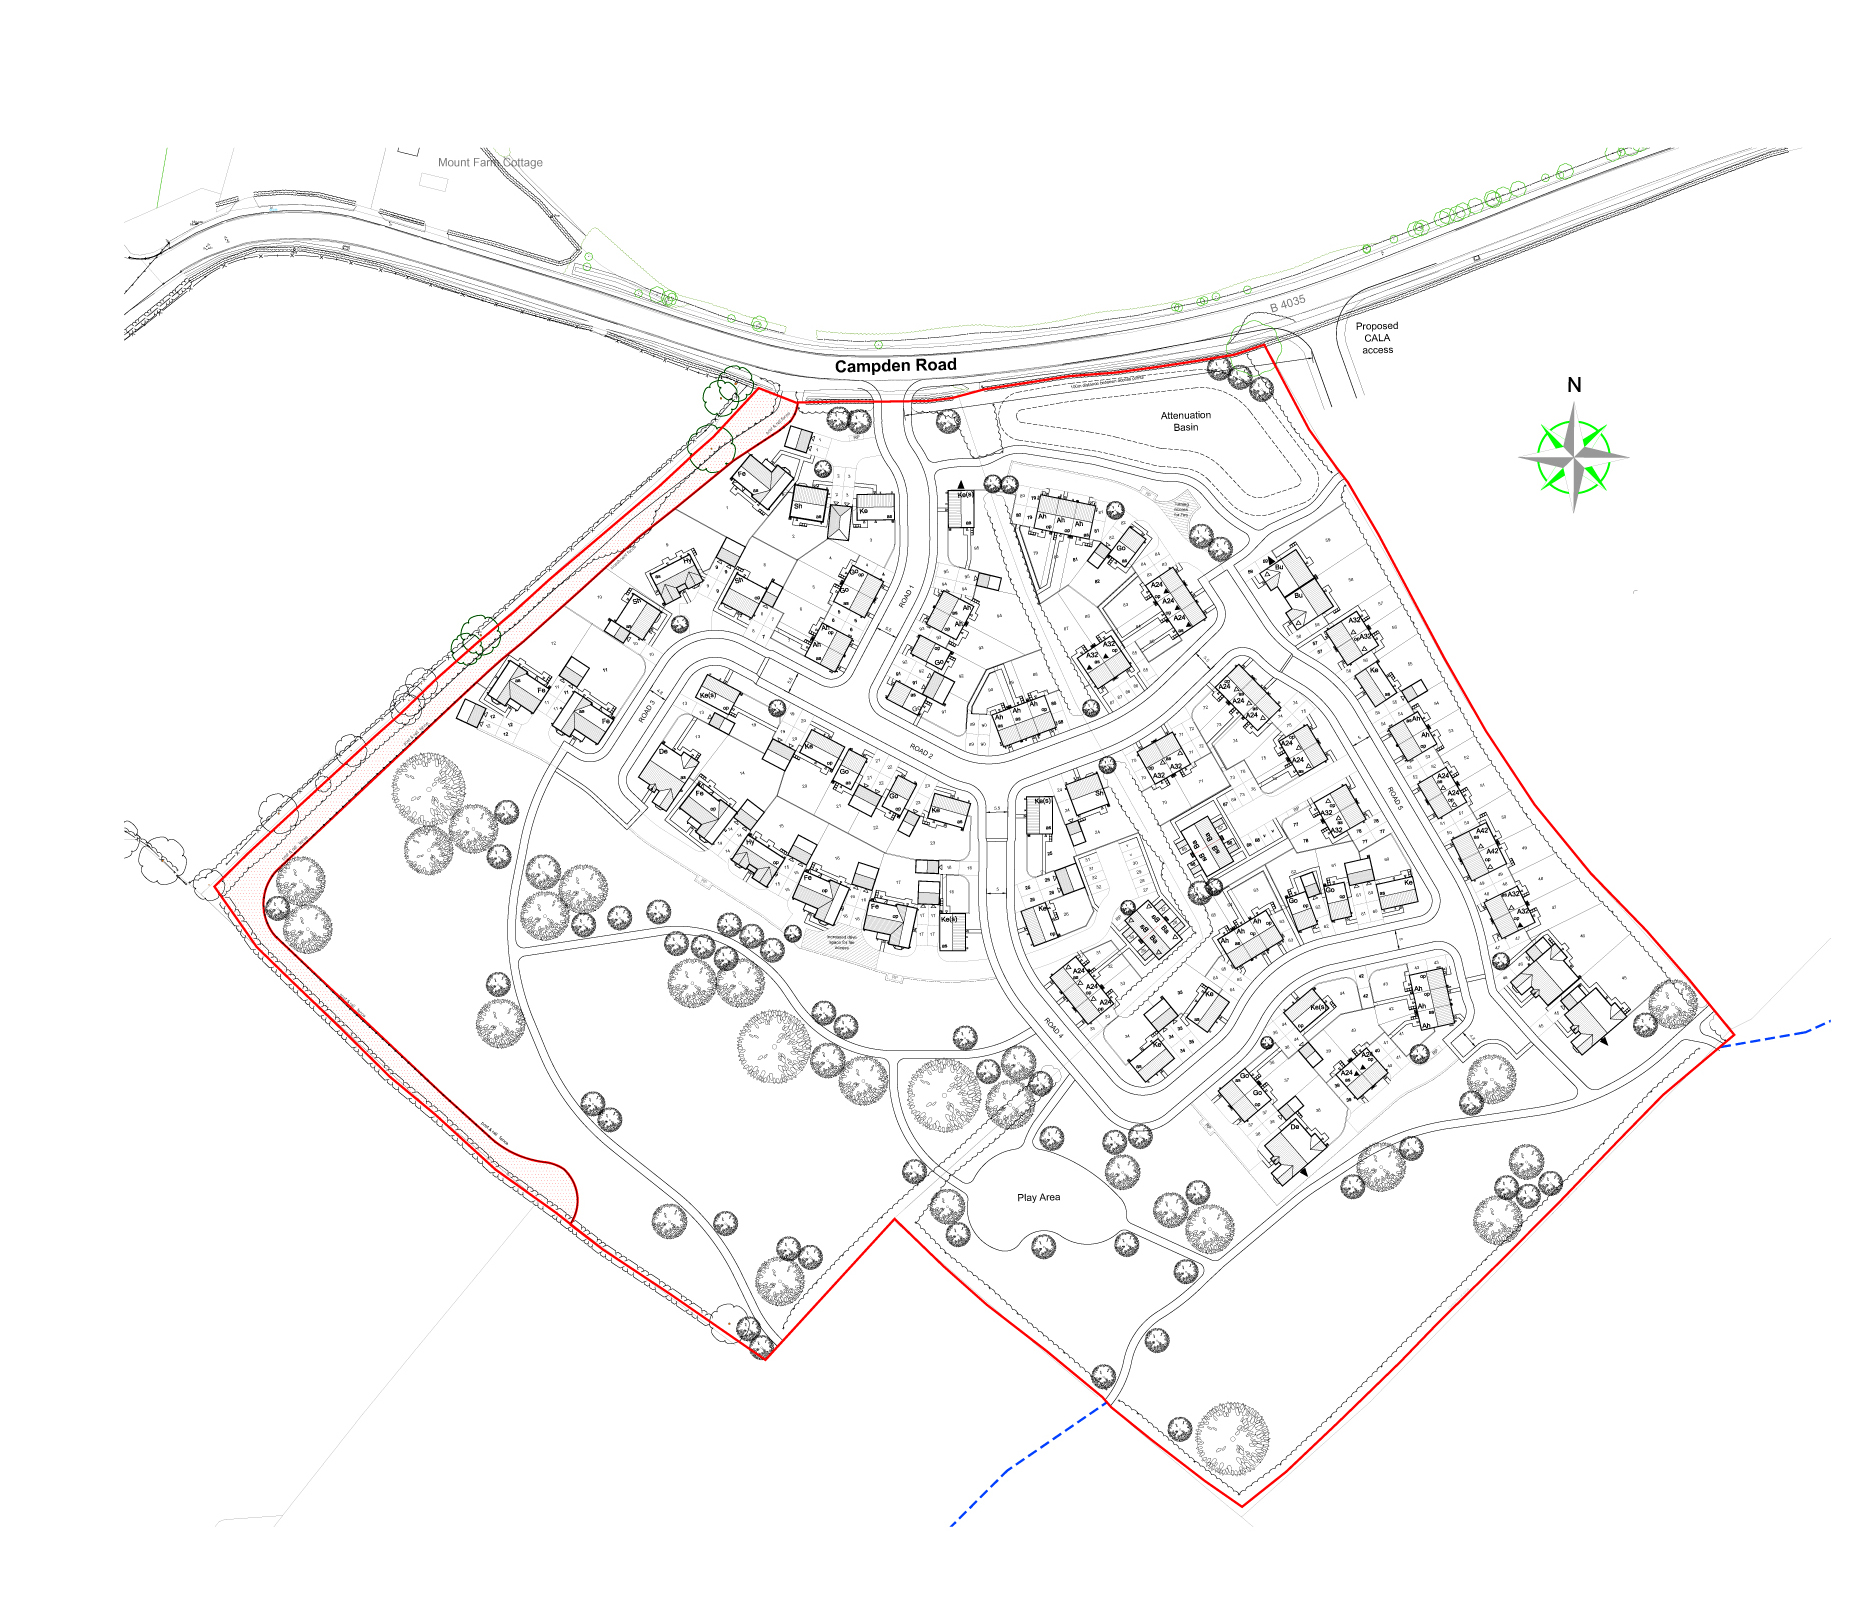 20134-01 Shipston Planning Layout